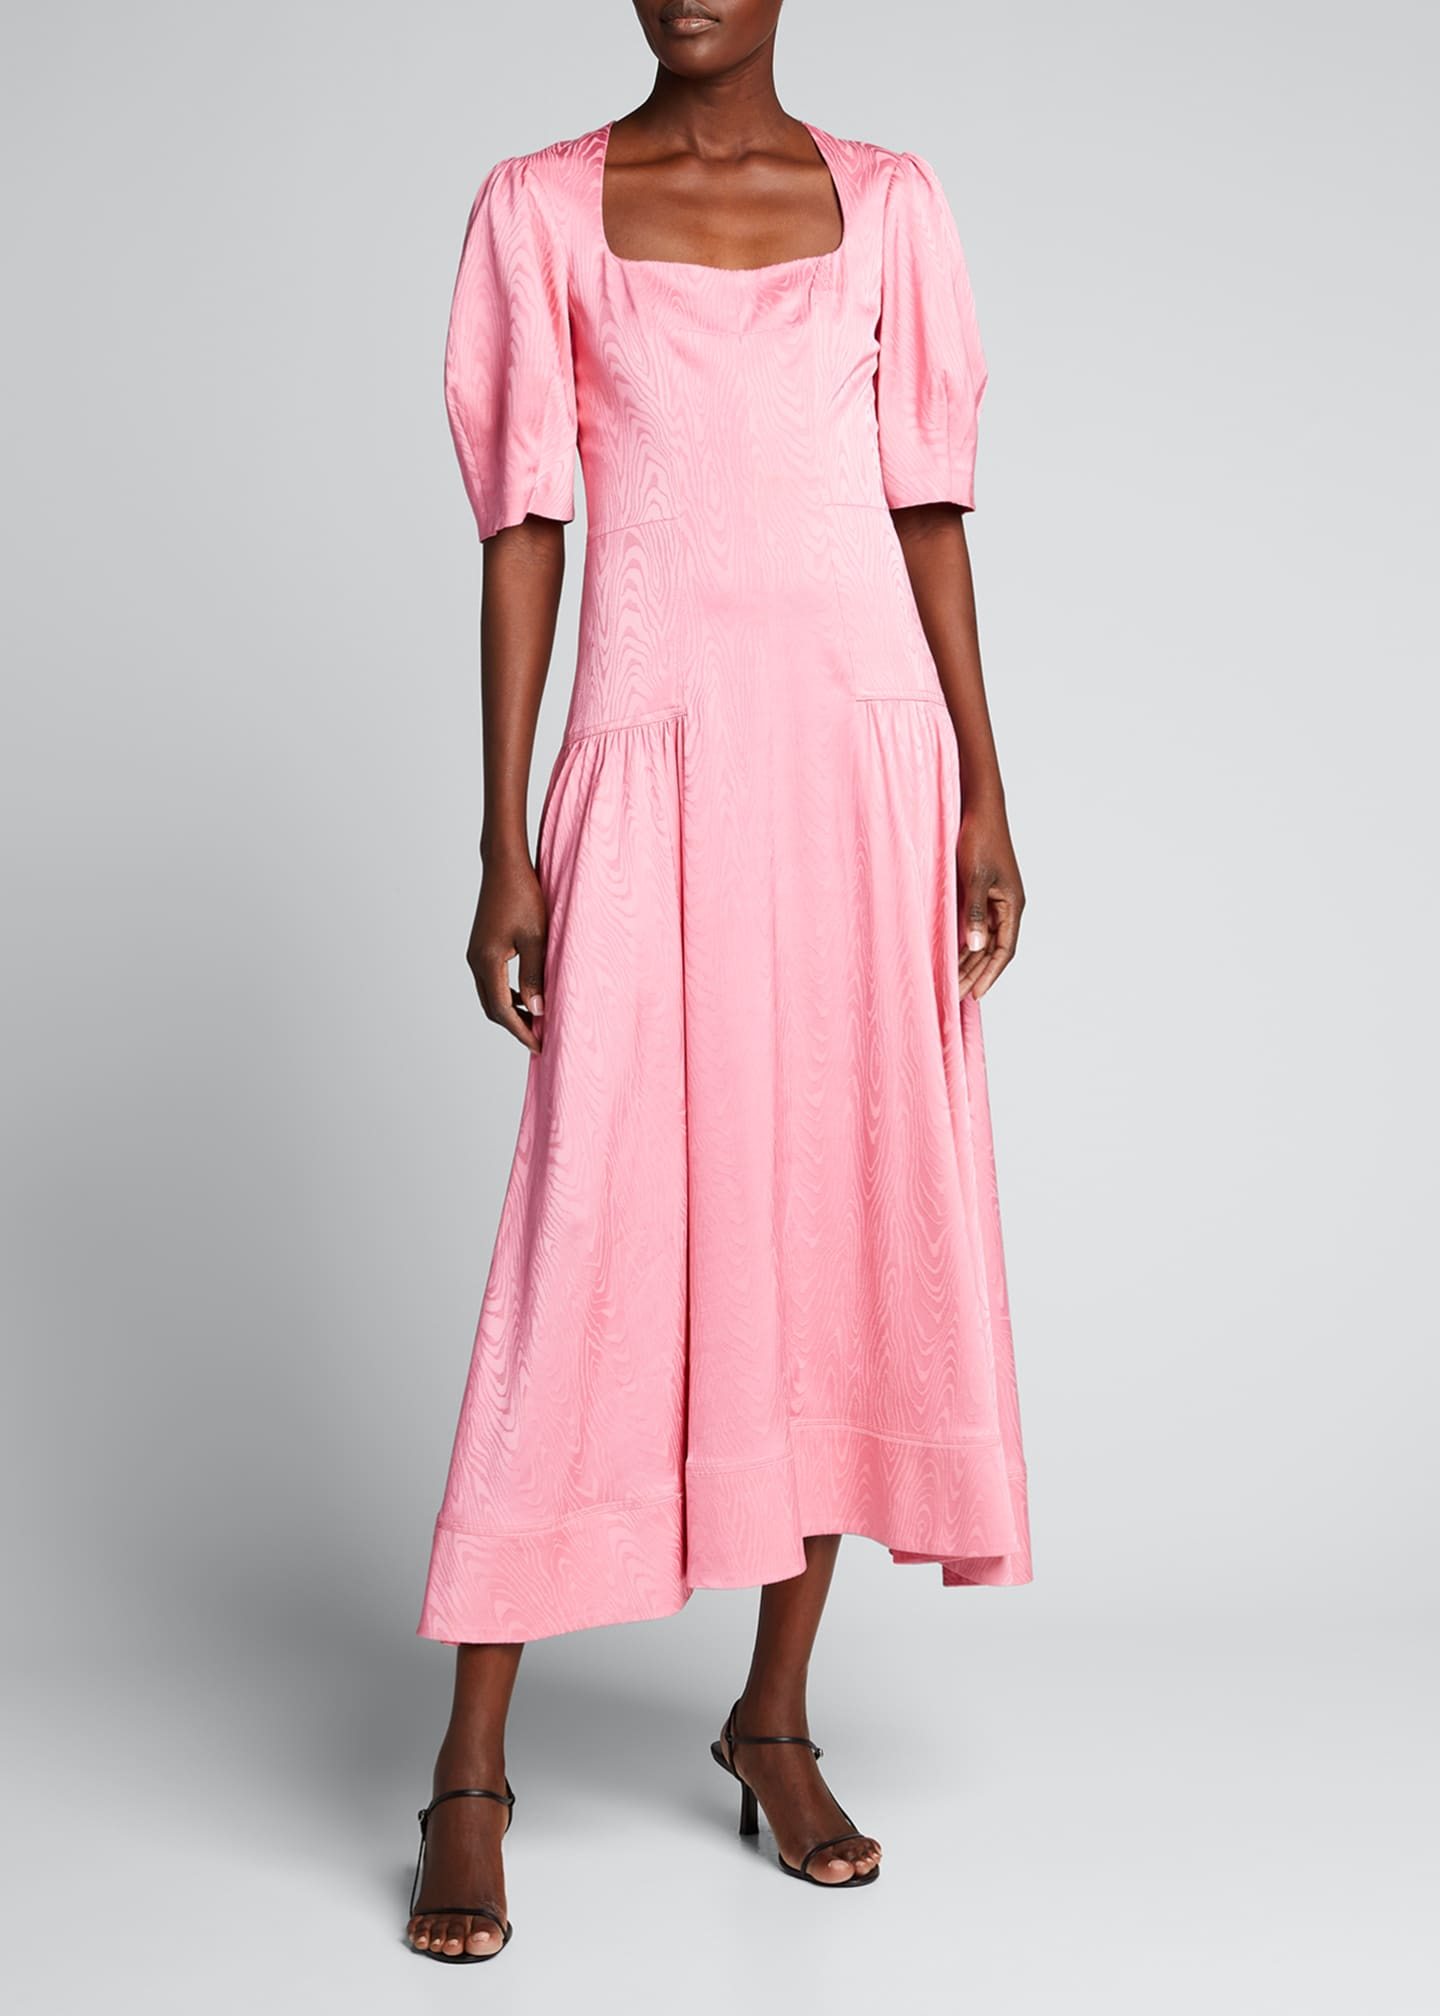 Rumi Moire Jacquard Square-Neck Dress